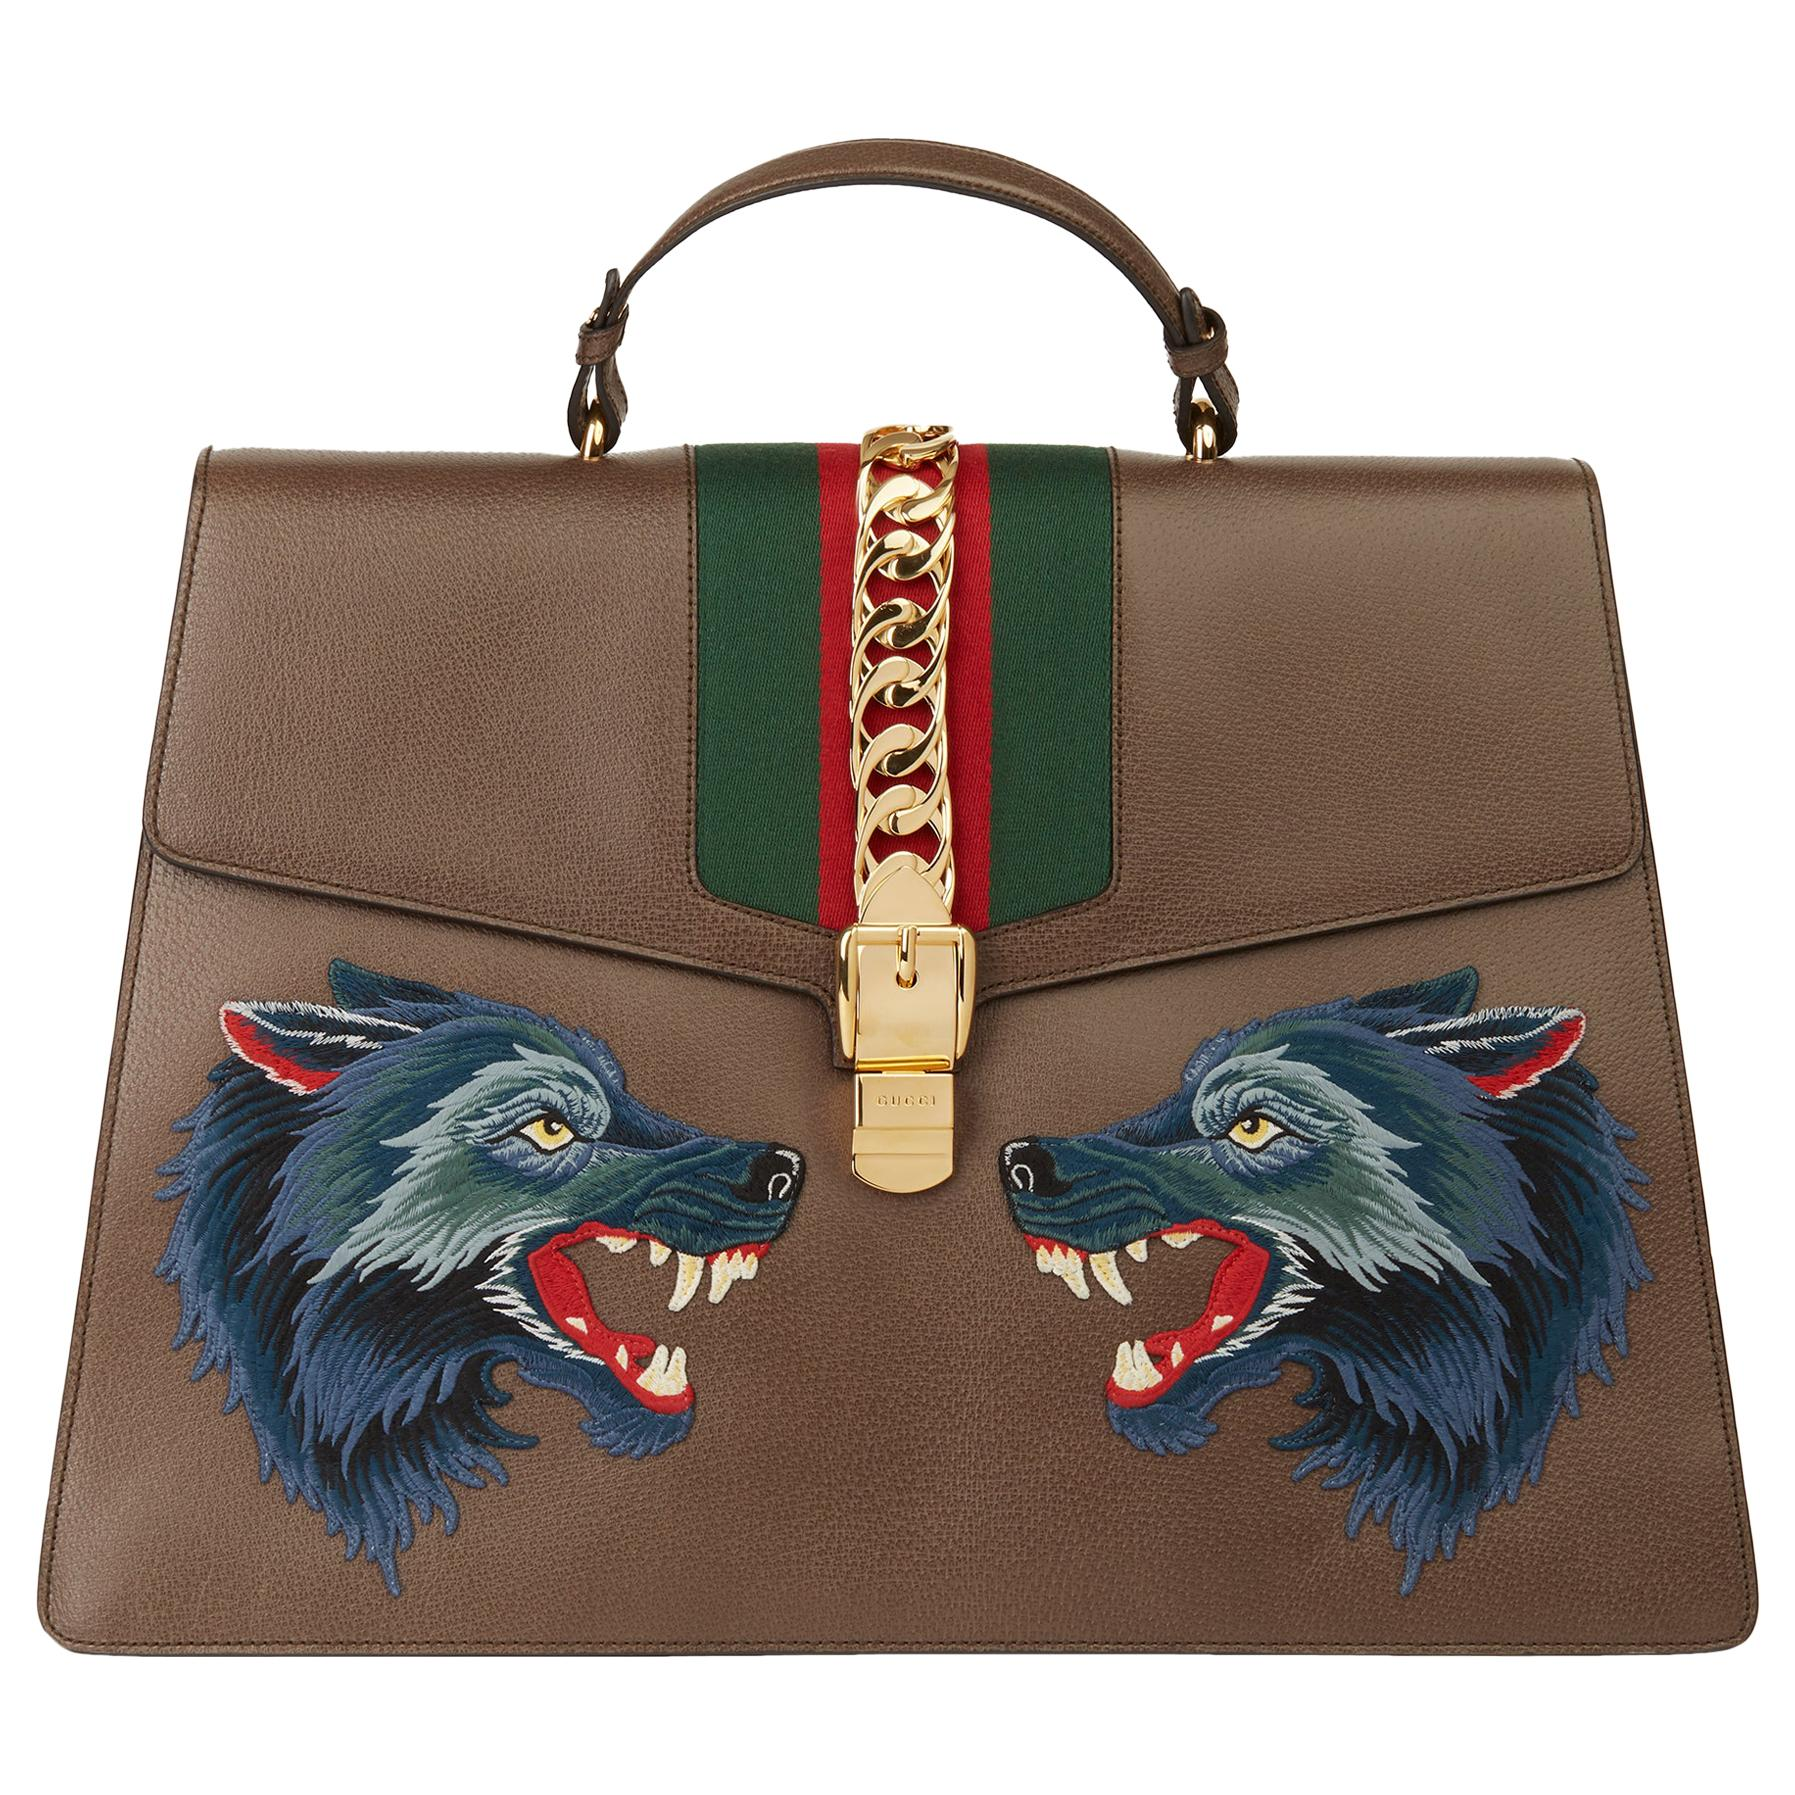 2019 Gucci Brown Pigskin Leather Sylvie Top Handle Duffle Bag